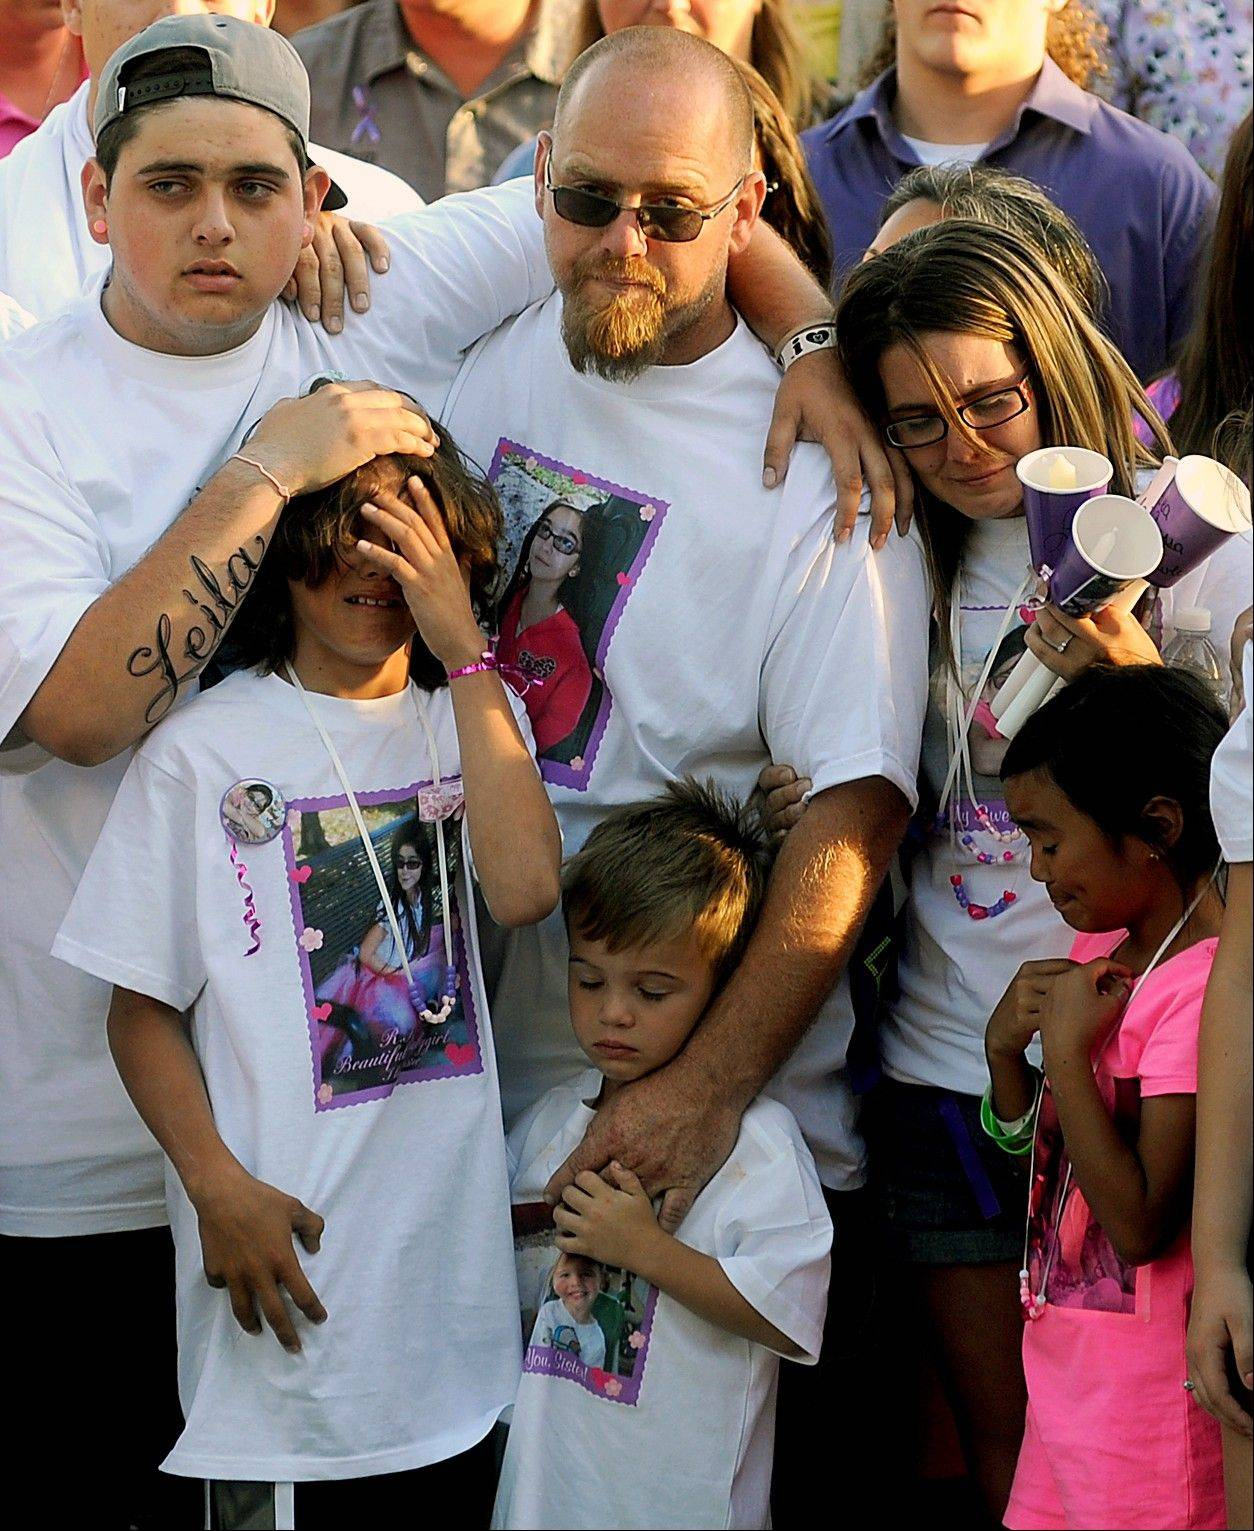 The family of slain 8-year-old girl Leila Fowler. Leila's father, Barney Fowler, center, stands with Leila's mother Crystal Walters, right, at his shoulder. Fowler says he believes 12-year-old son, who was arrested in the stabbing death of his 8-year-old sister, is innocent until he is shown evidence that proves otherwise.